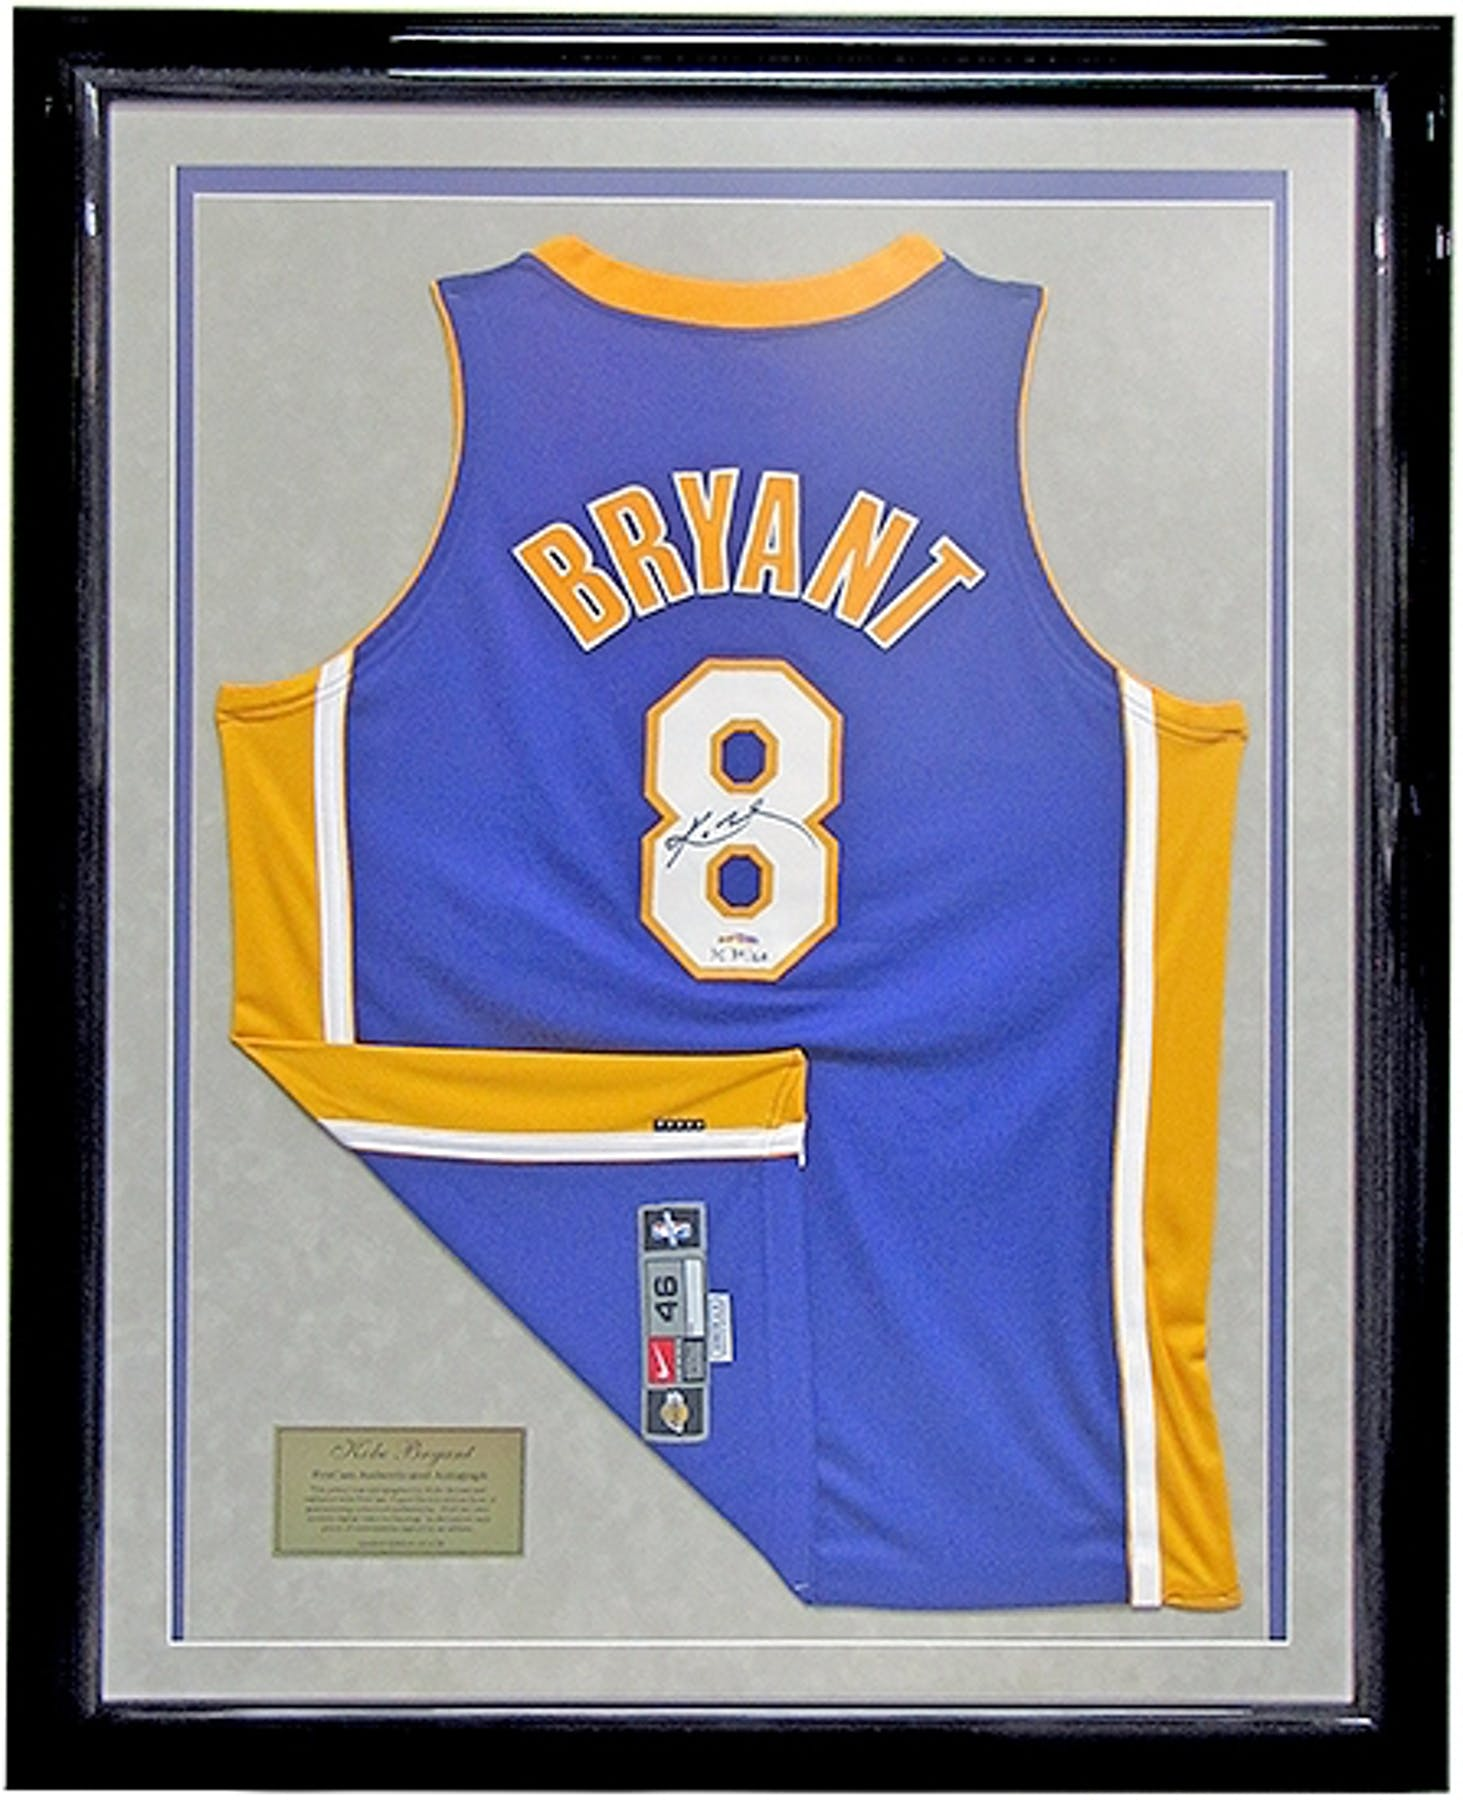 763a02140b8 ... Kobe Bryant Autographed Framed L.A. Lakers Authentic Jersey 8 (UDA) 50  . ...